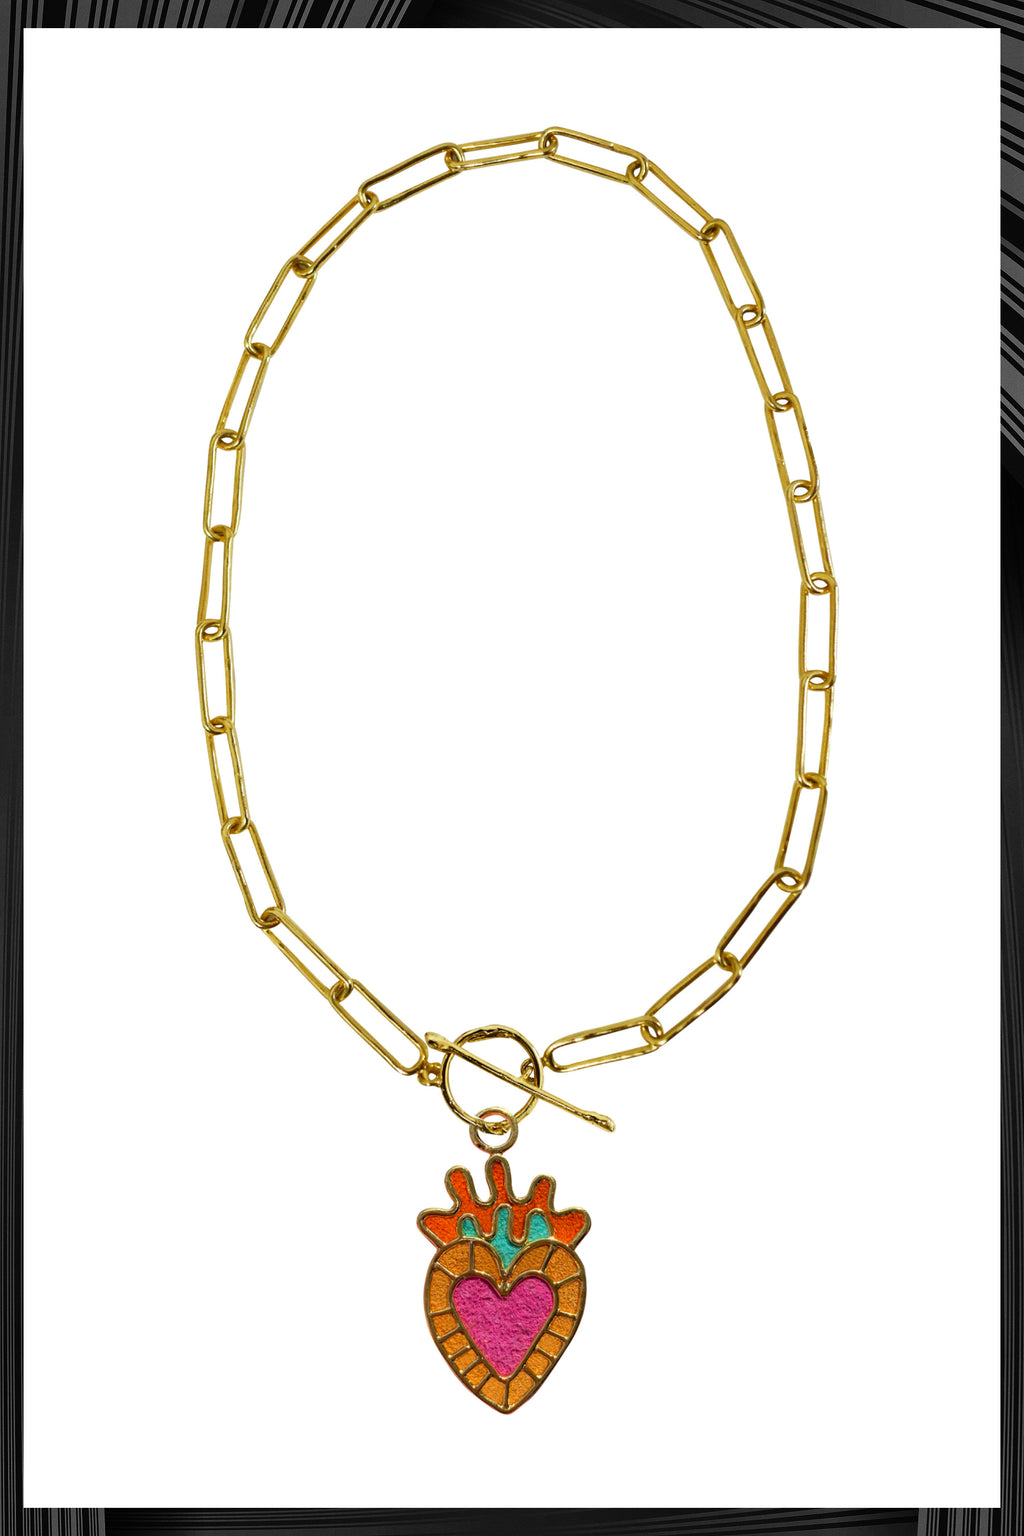 Milagritos Amarillos Thin Chain Necklace | Free Delivery - 3 Week Shipping